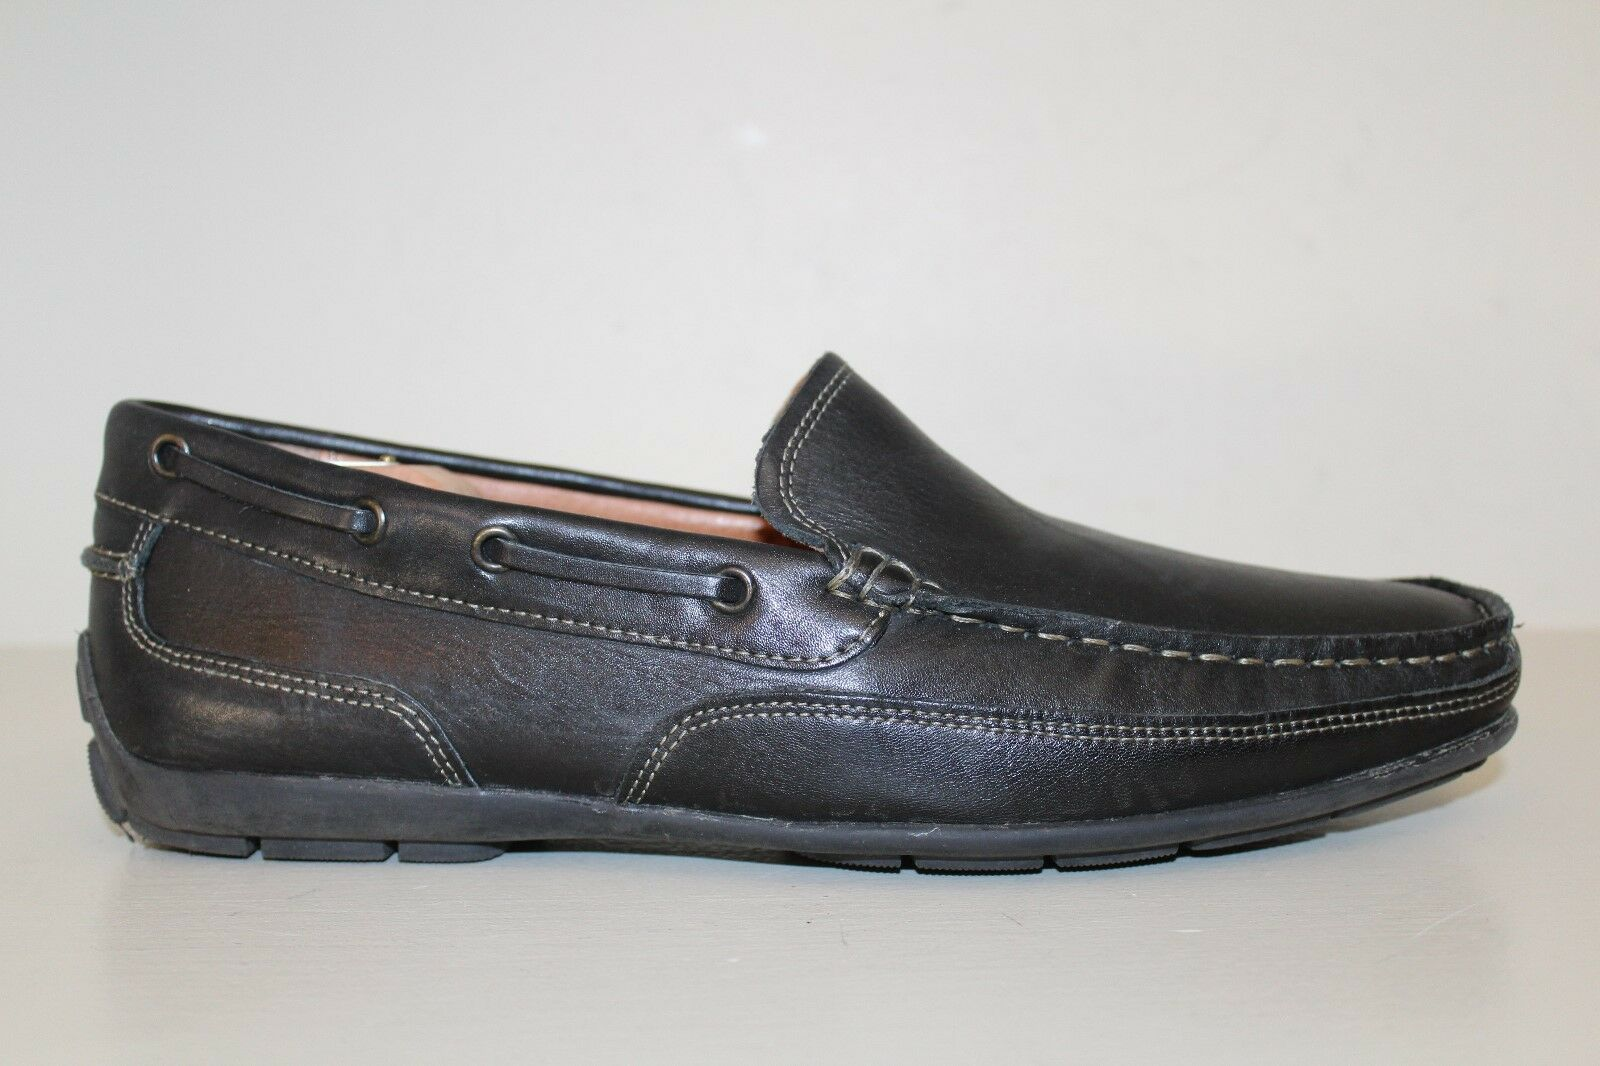 Bass Mens Driving Loafer shoes Sz 10.5 M Hank Black Leather Casual Slip On MocToe